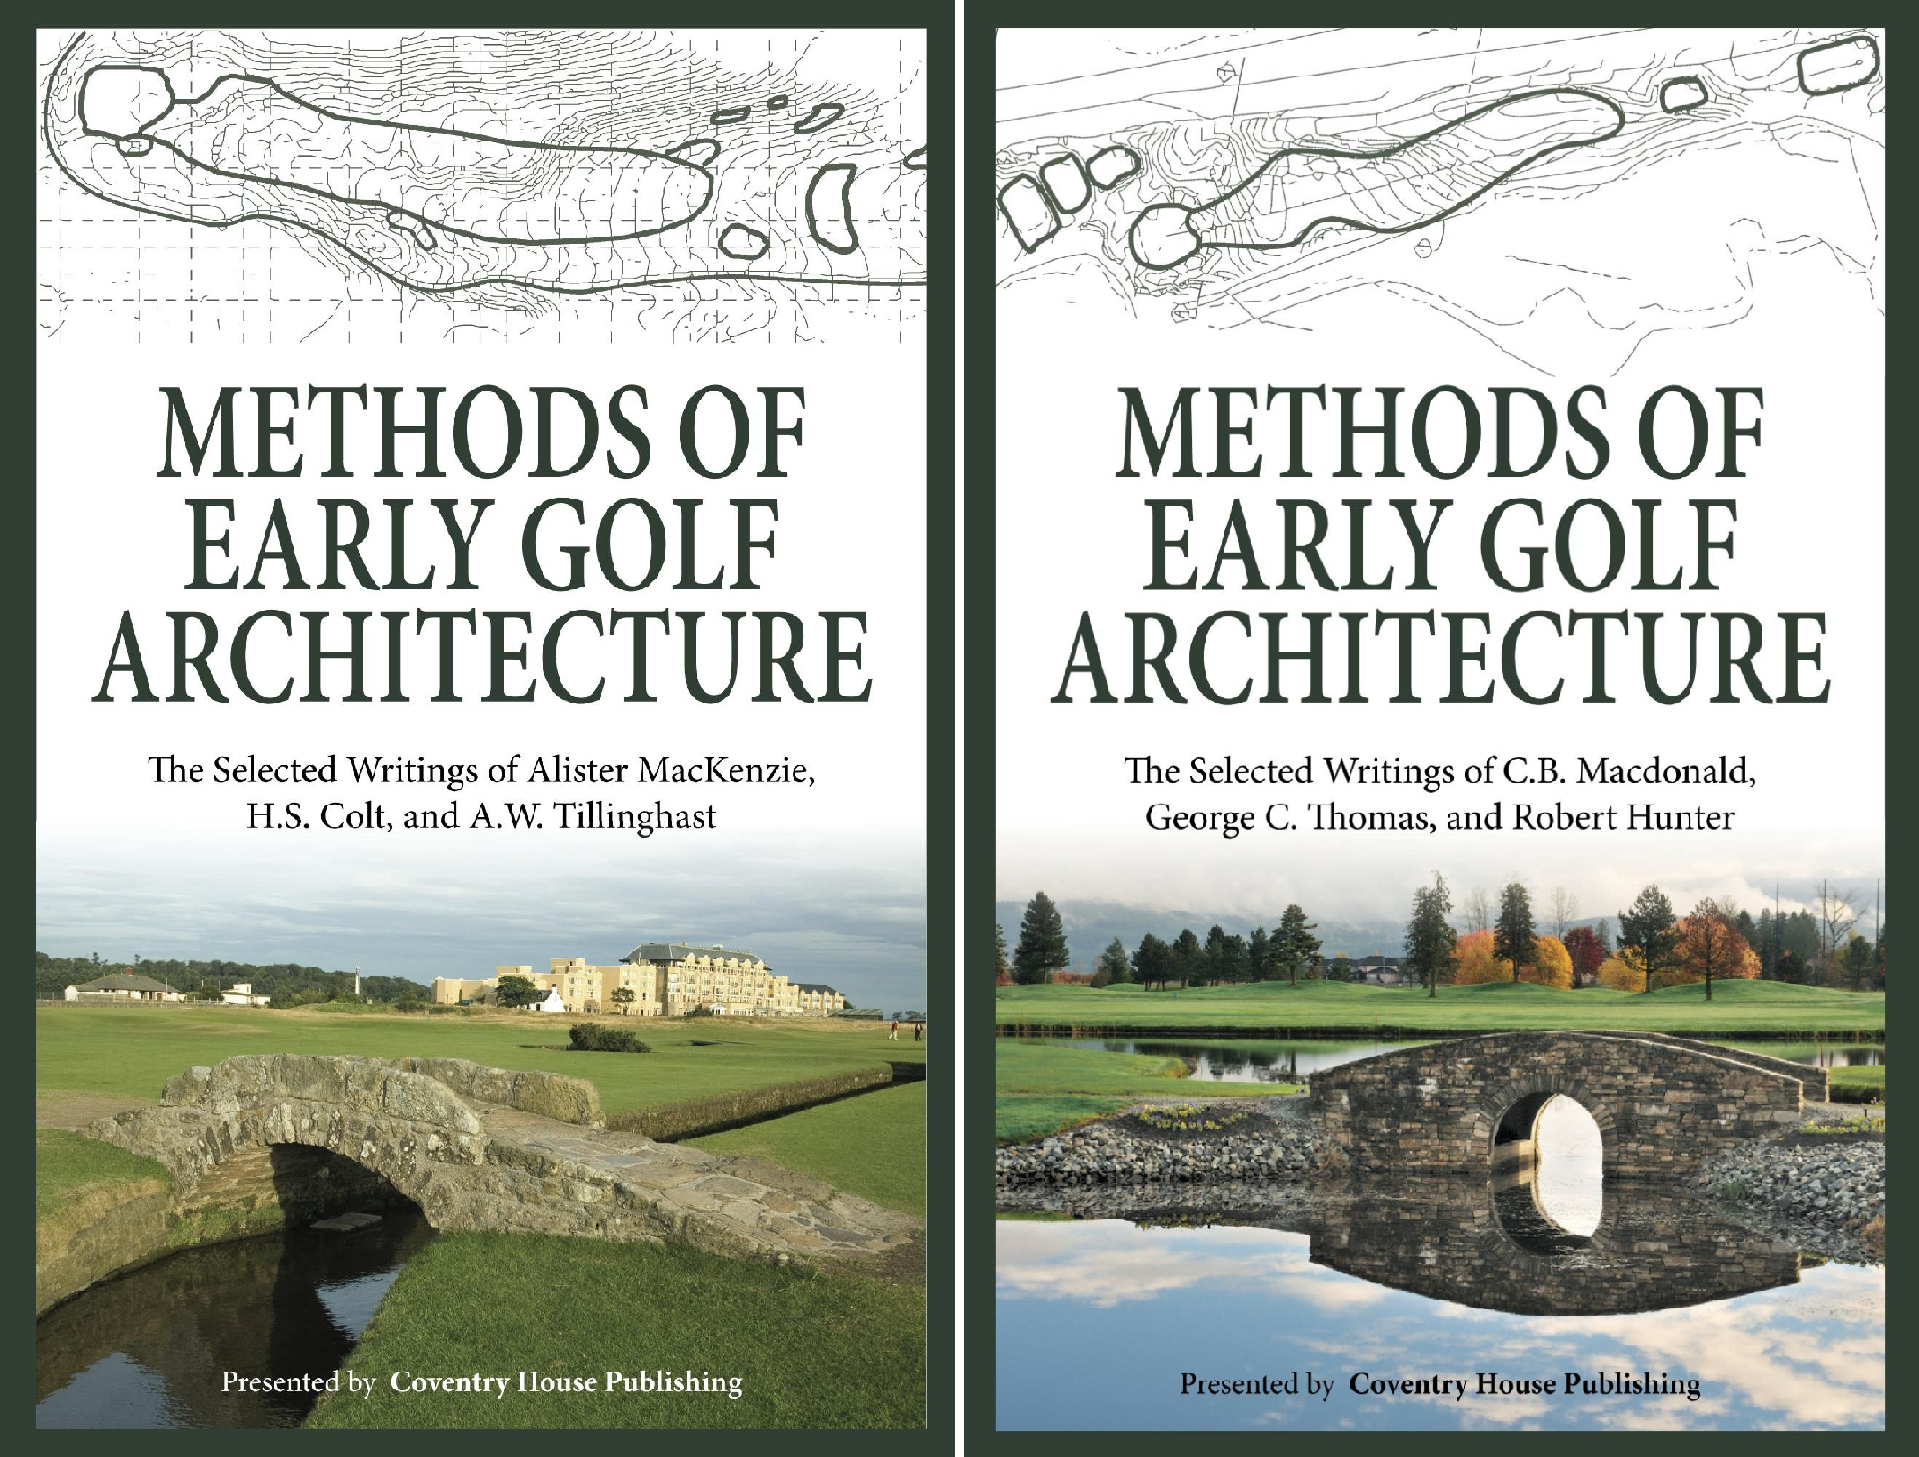 Methods of Early Golf Architecture Architecture Study & Teaching